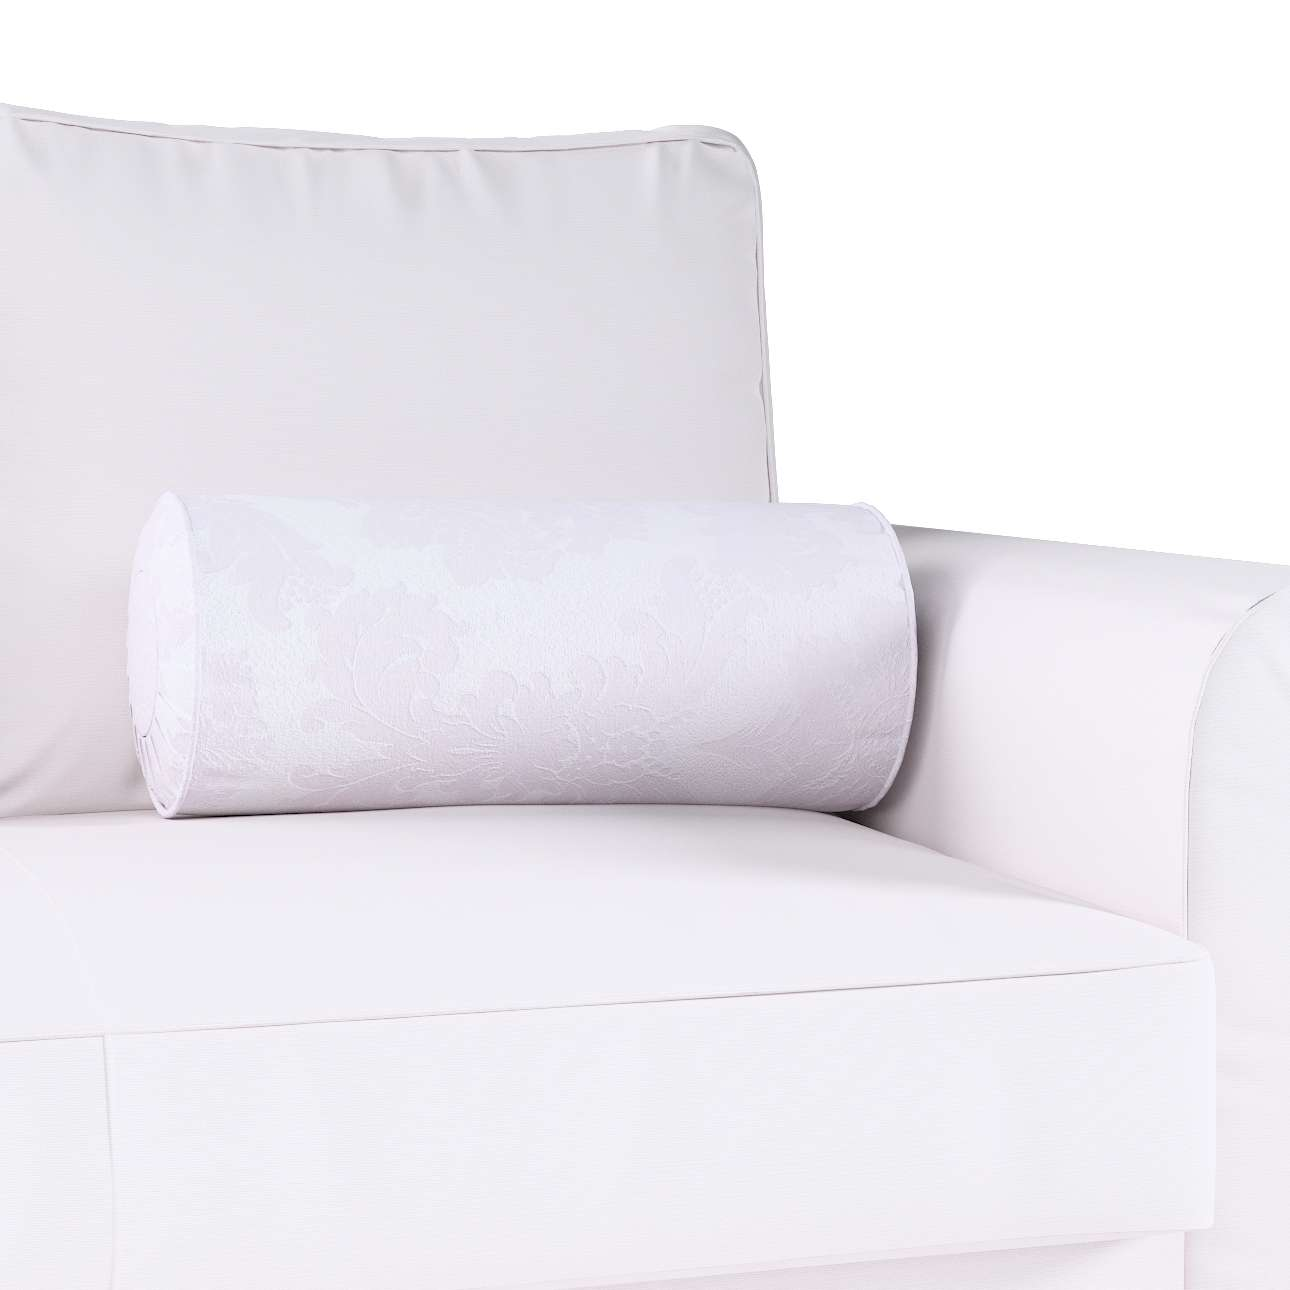 Bolster cushion with pleats in collection Damasco, fabric: 613-00